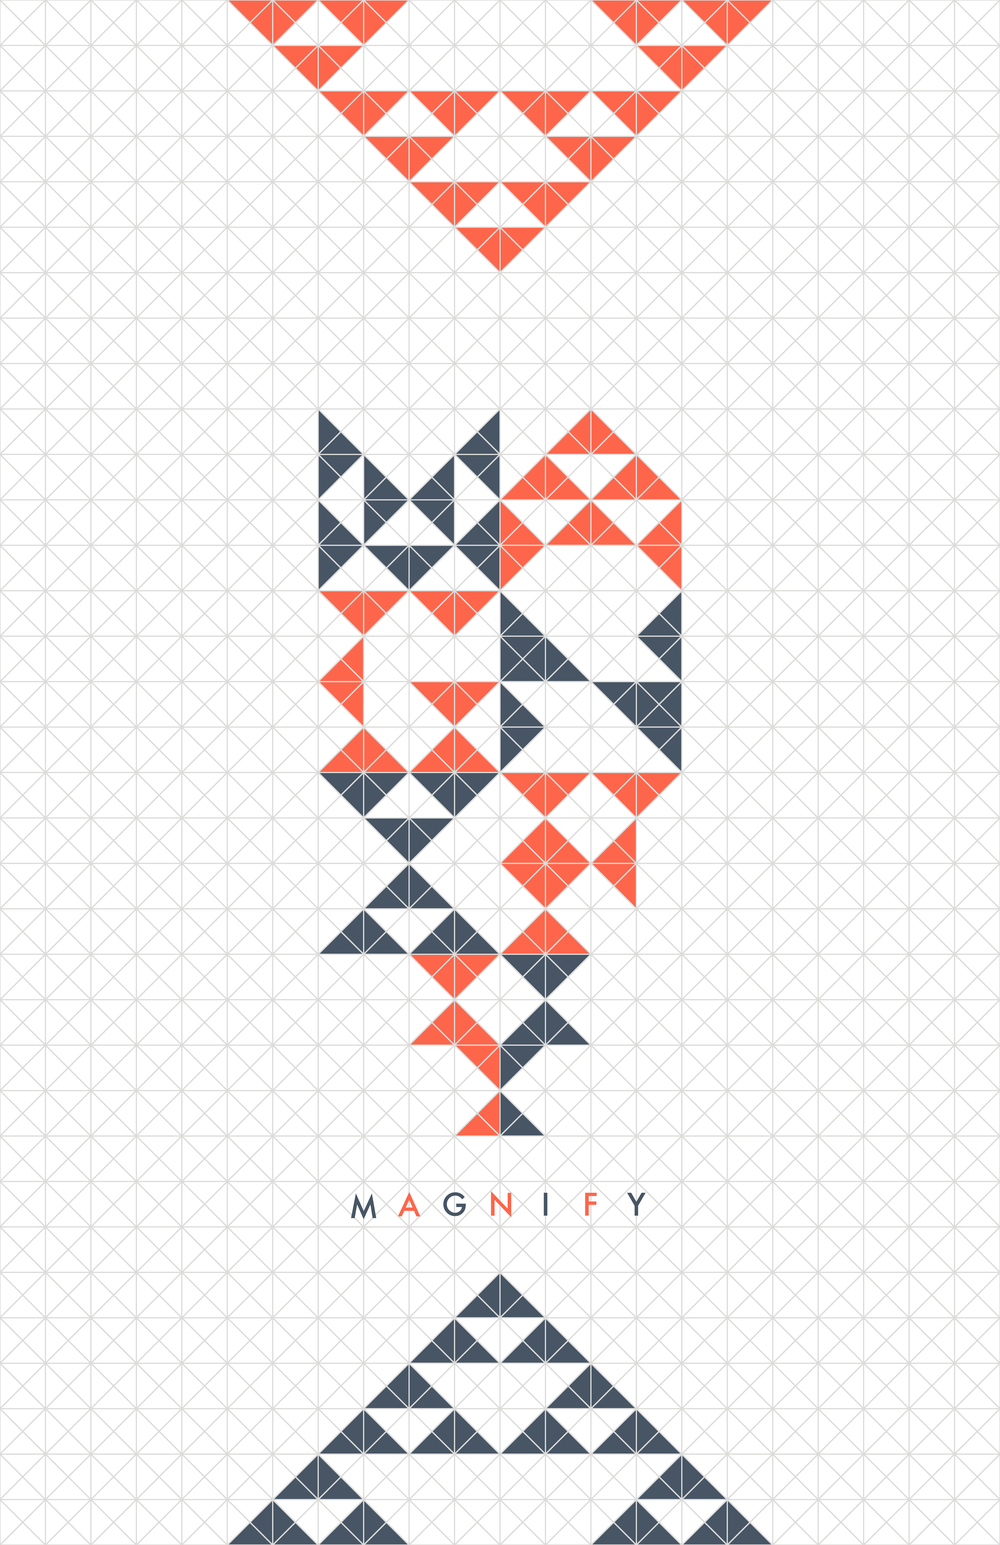 magnifyposter